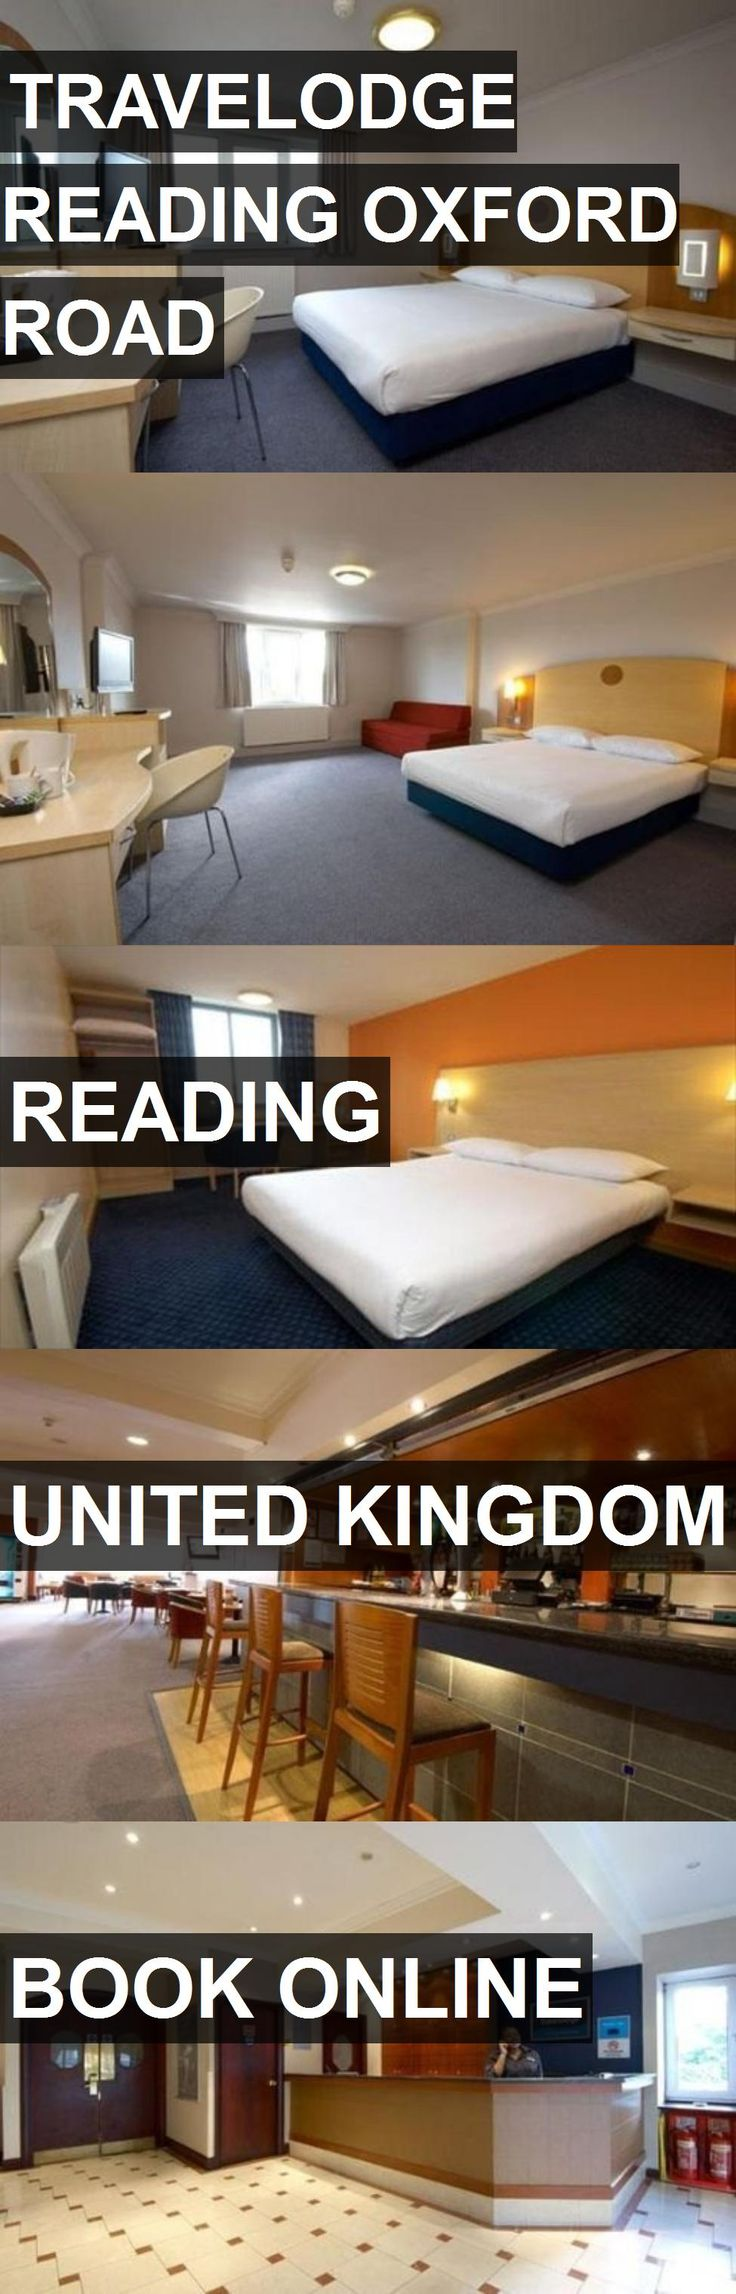 Hotel TRAVELODGE READING OXFORD ROAD in Reading, United Kingdom. For more information, photos, reviews and best prices please follow the link. #UnitedKingdom #Reading #TRAVELODGEREADINGOXFORDROAD #hotel #travel #vacation